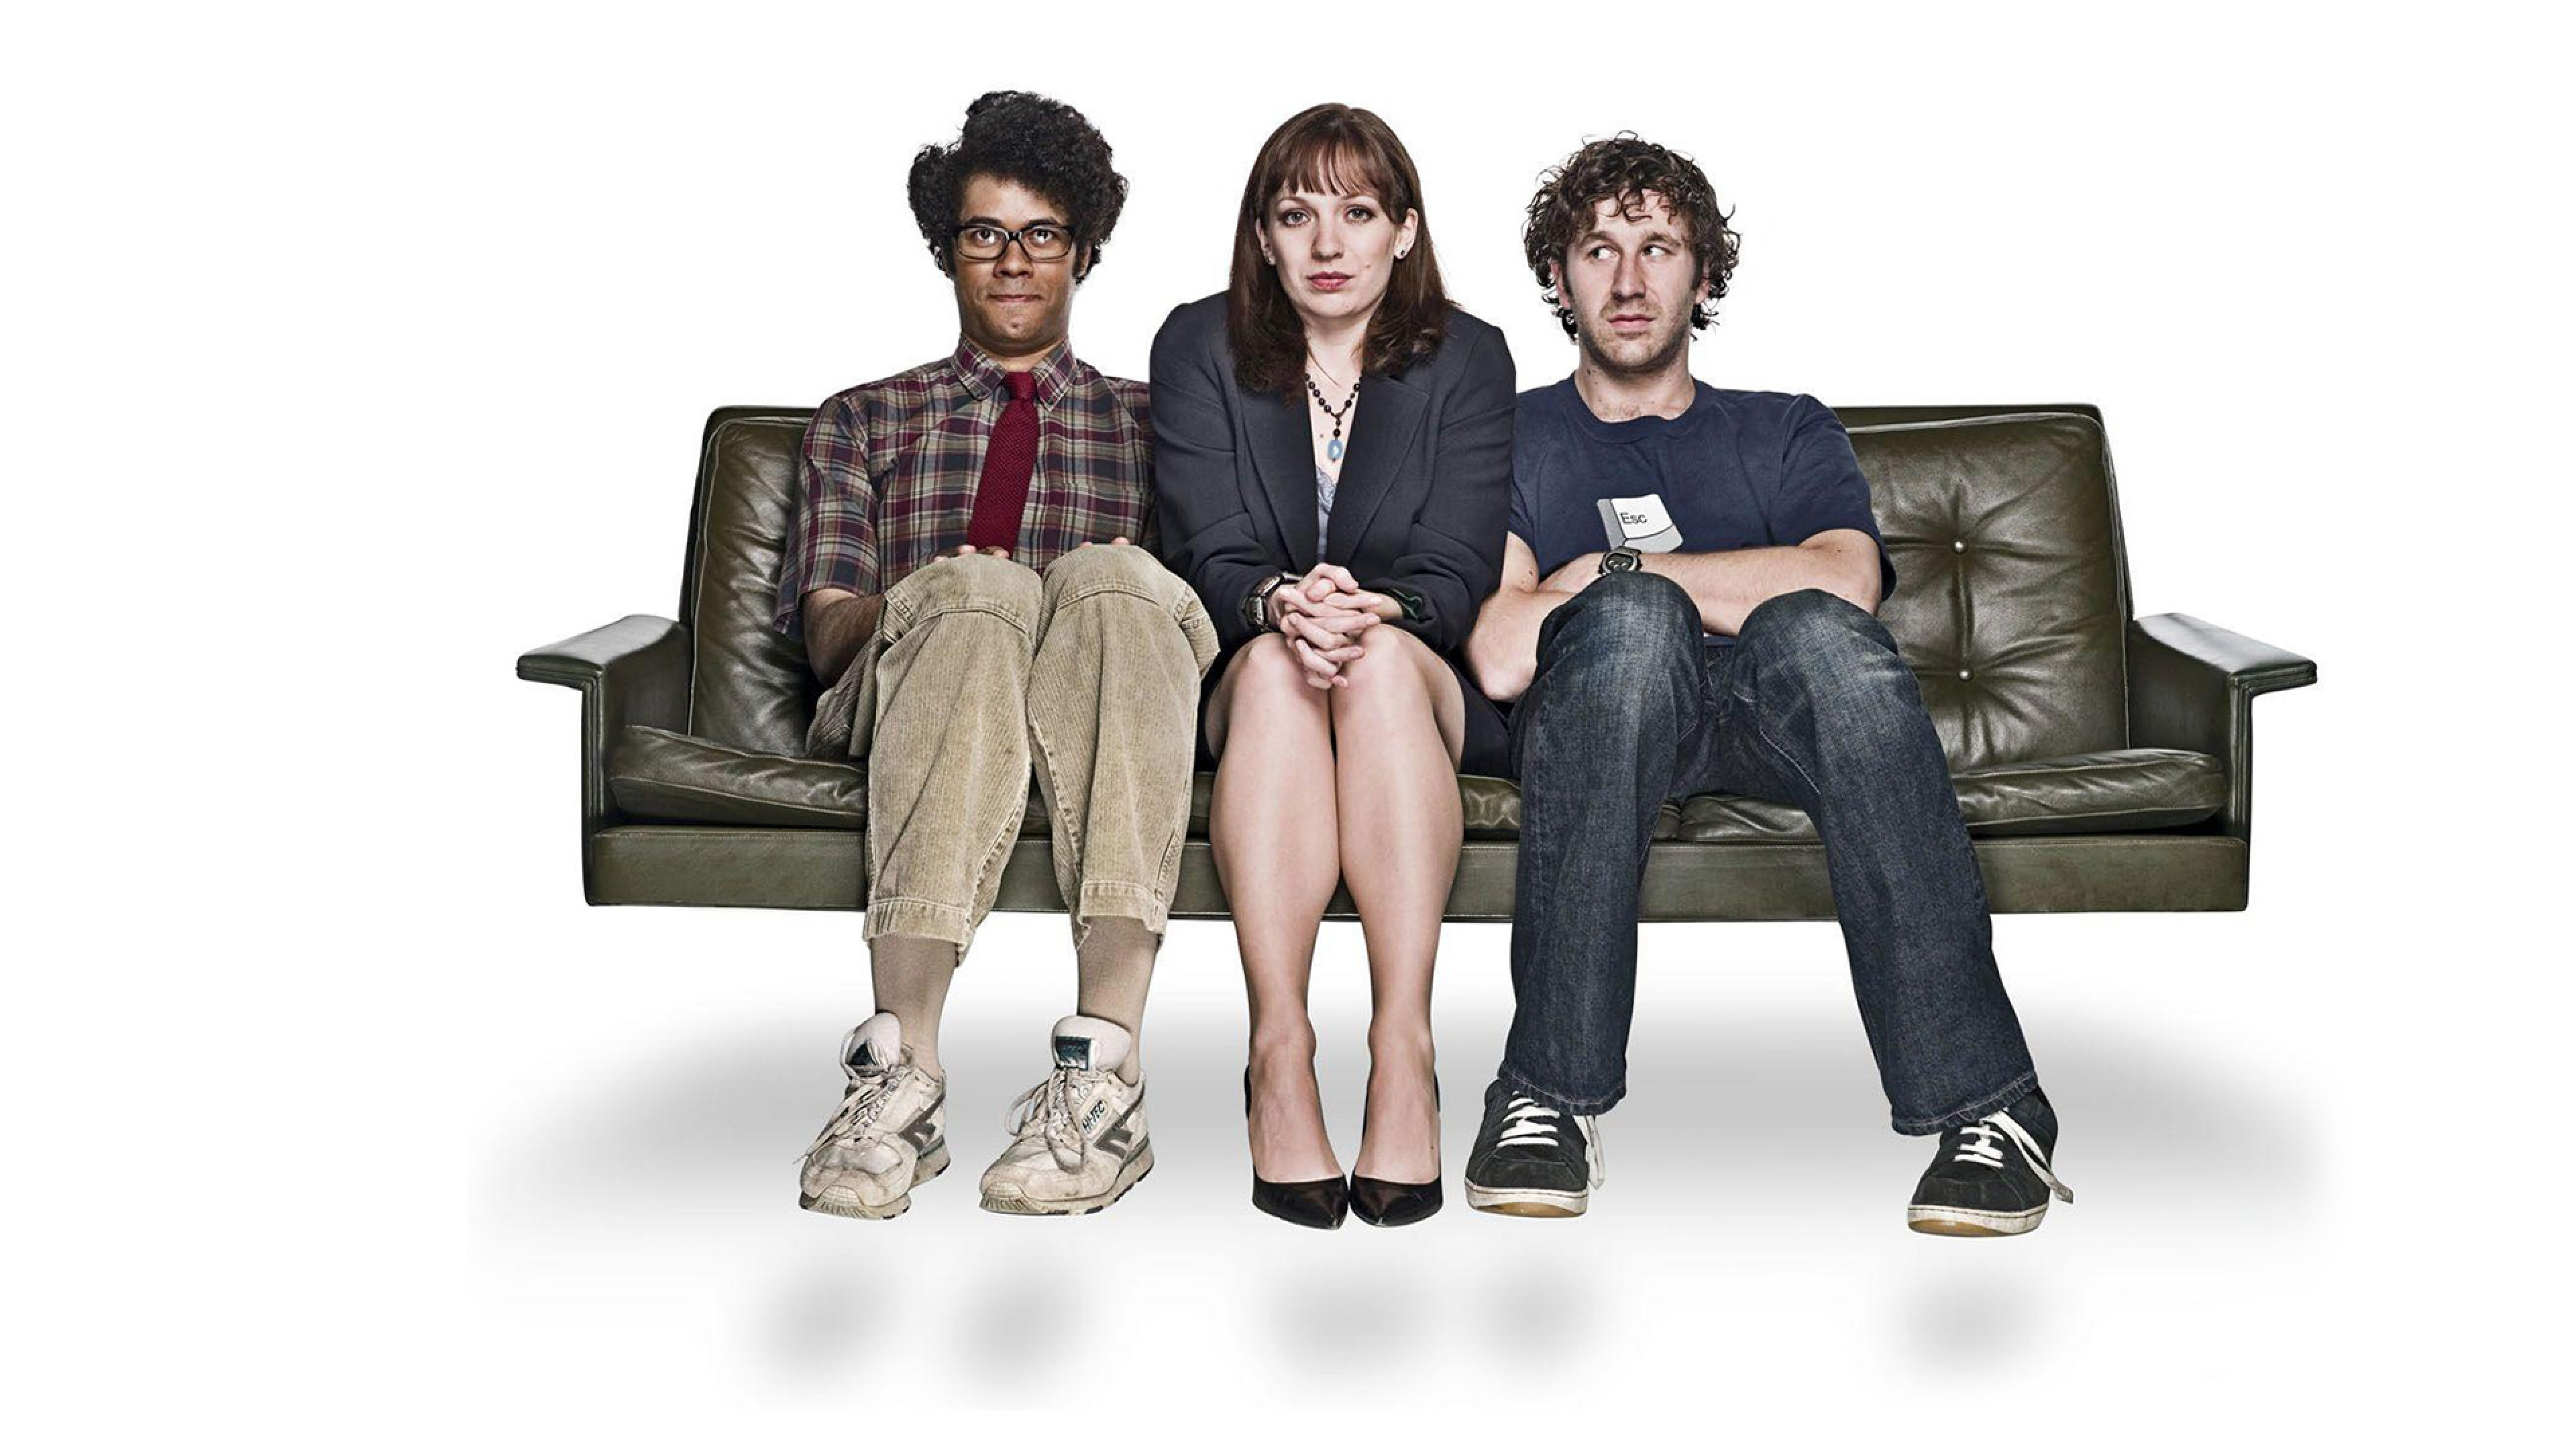 3840x2160  Wallpaper the it crowd, richard ayoade, katherine parkinson